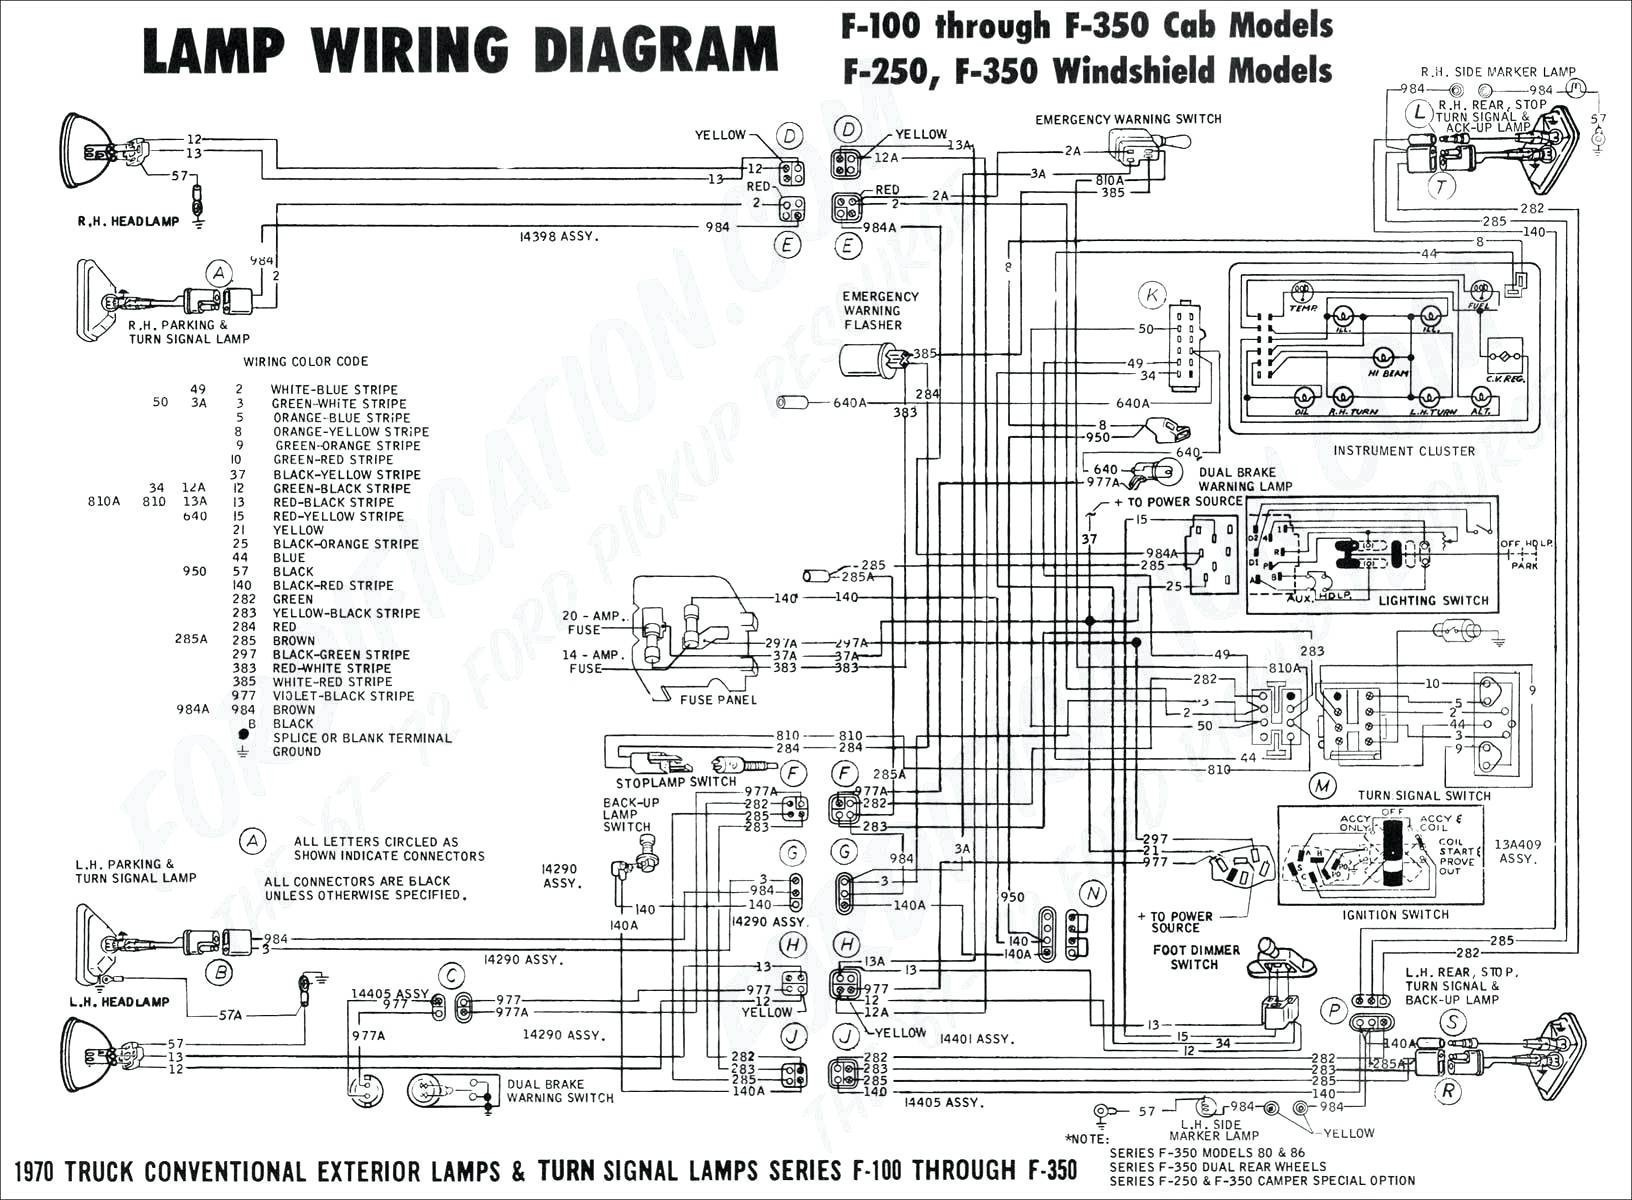 hight resolution of 91 plymouth acclaim fuse diagram wiring diagram expert 1991 plymouth acclaim fuse box diagram wiring diagram